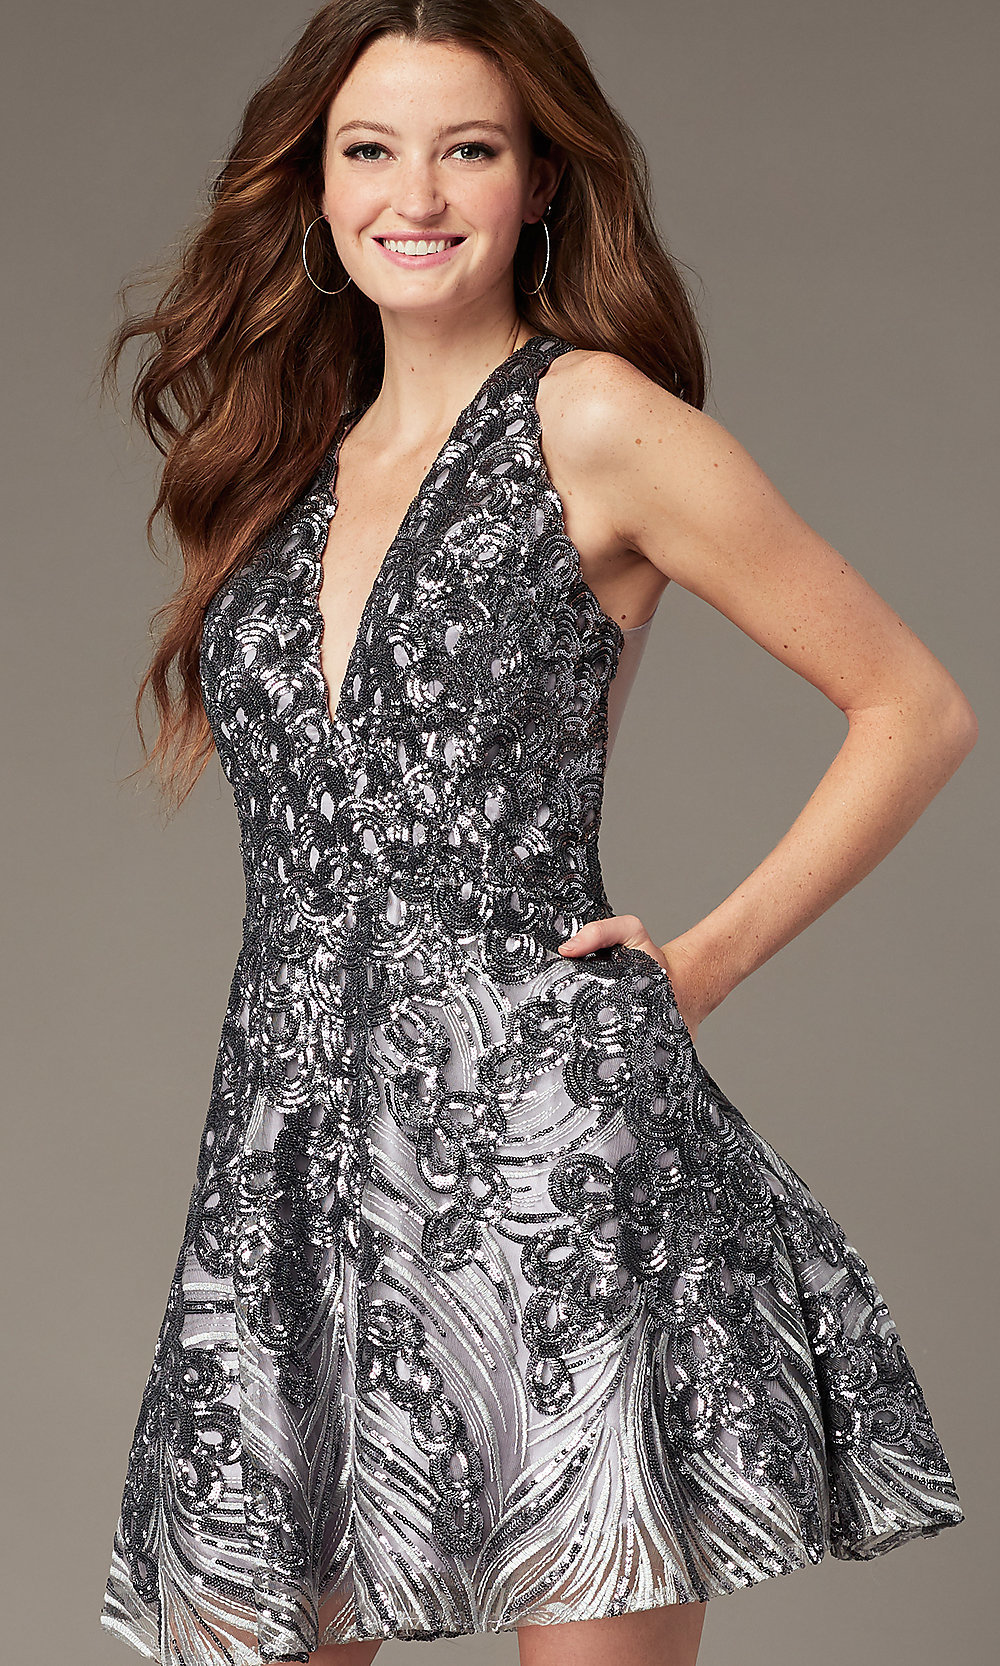 best selection of distinctive style how to serch Gunmetal Silver Short Sequin Homecoming Dress